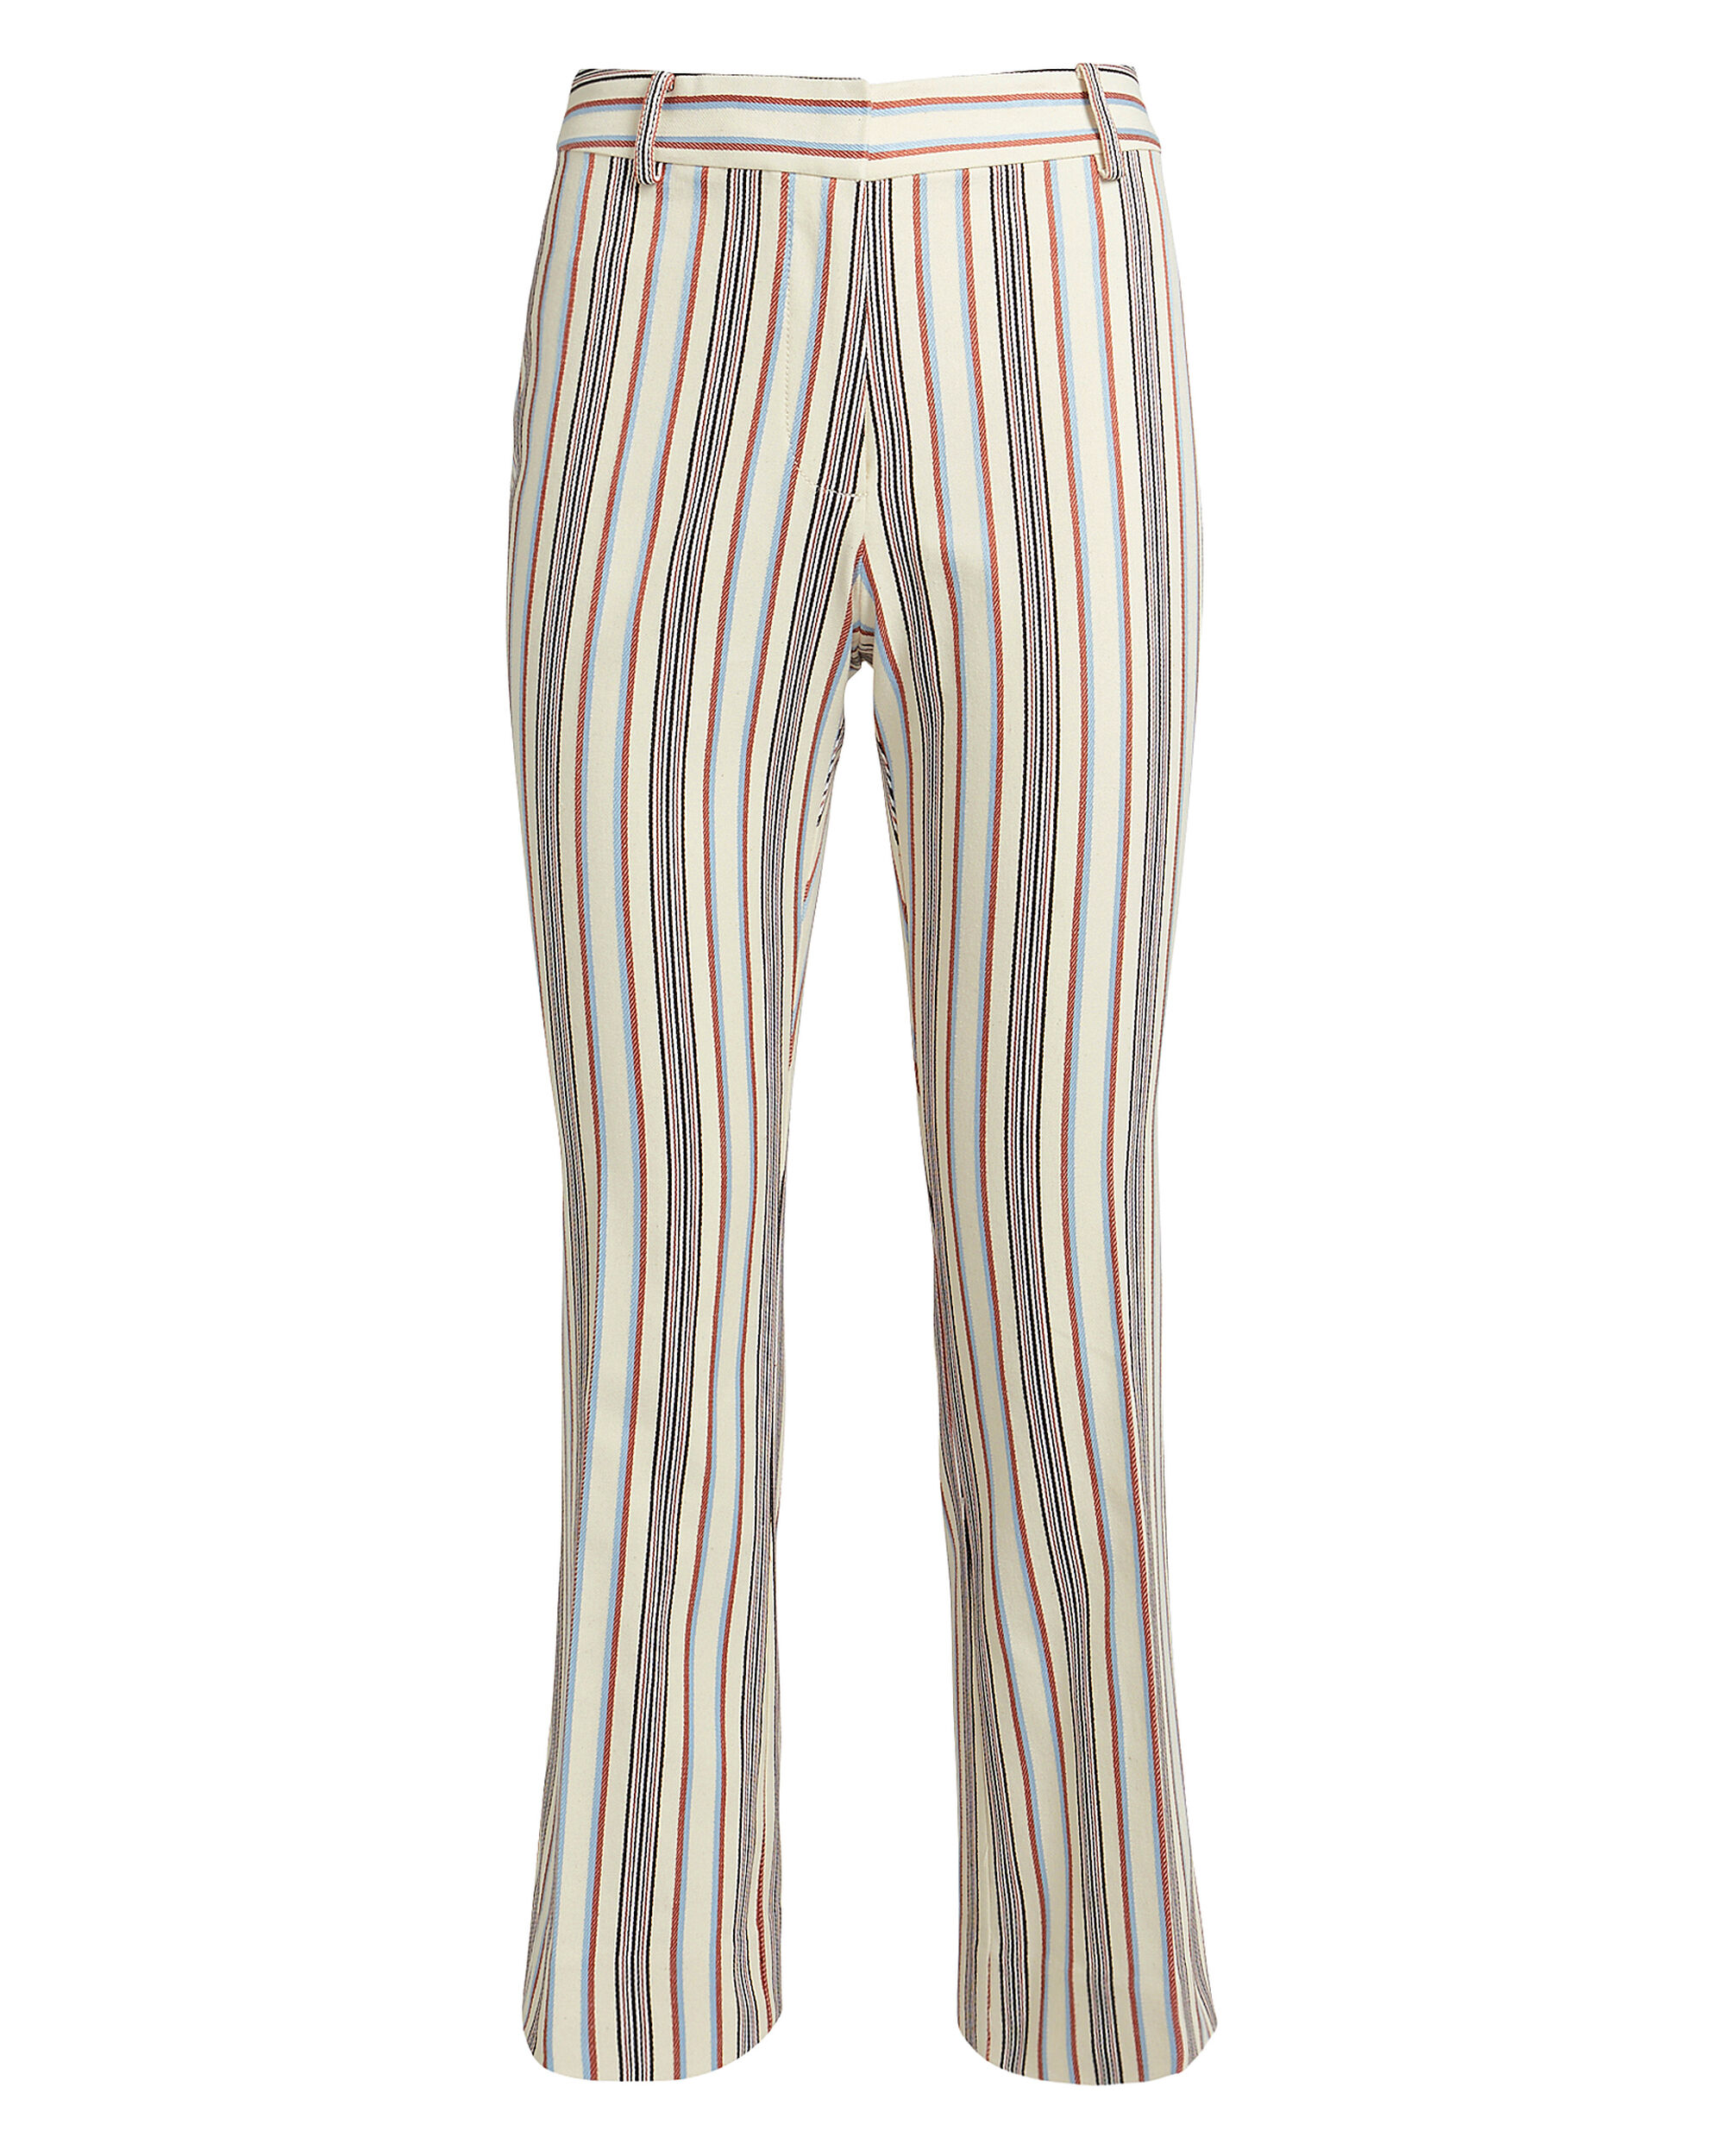 Striped Crop Flare Twill Trousers, IVORY/BLUE/RED, hi-res